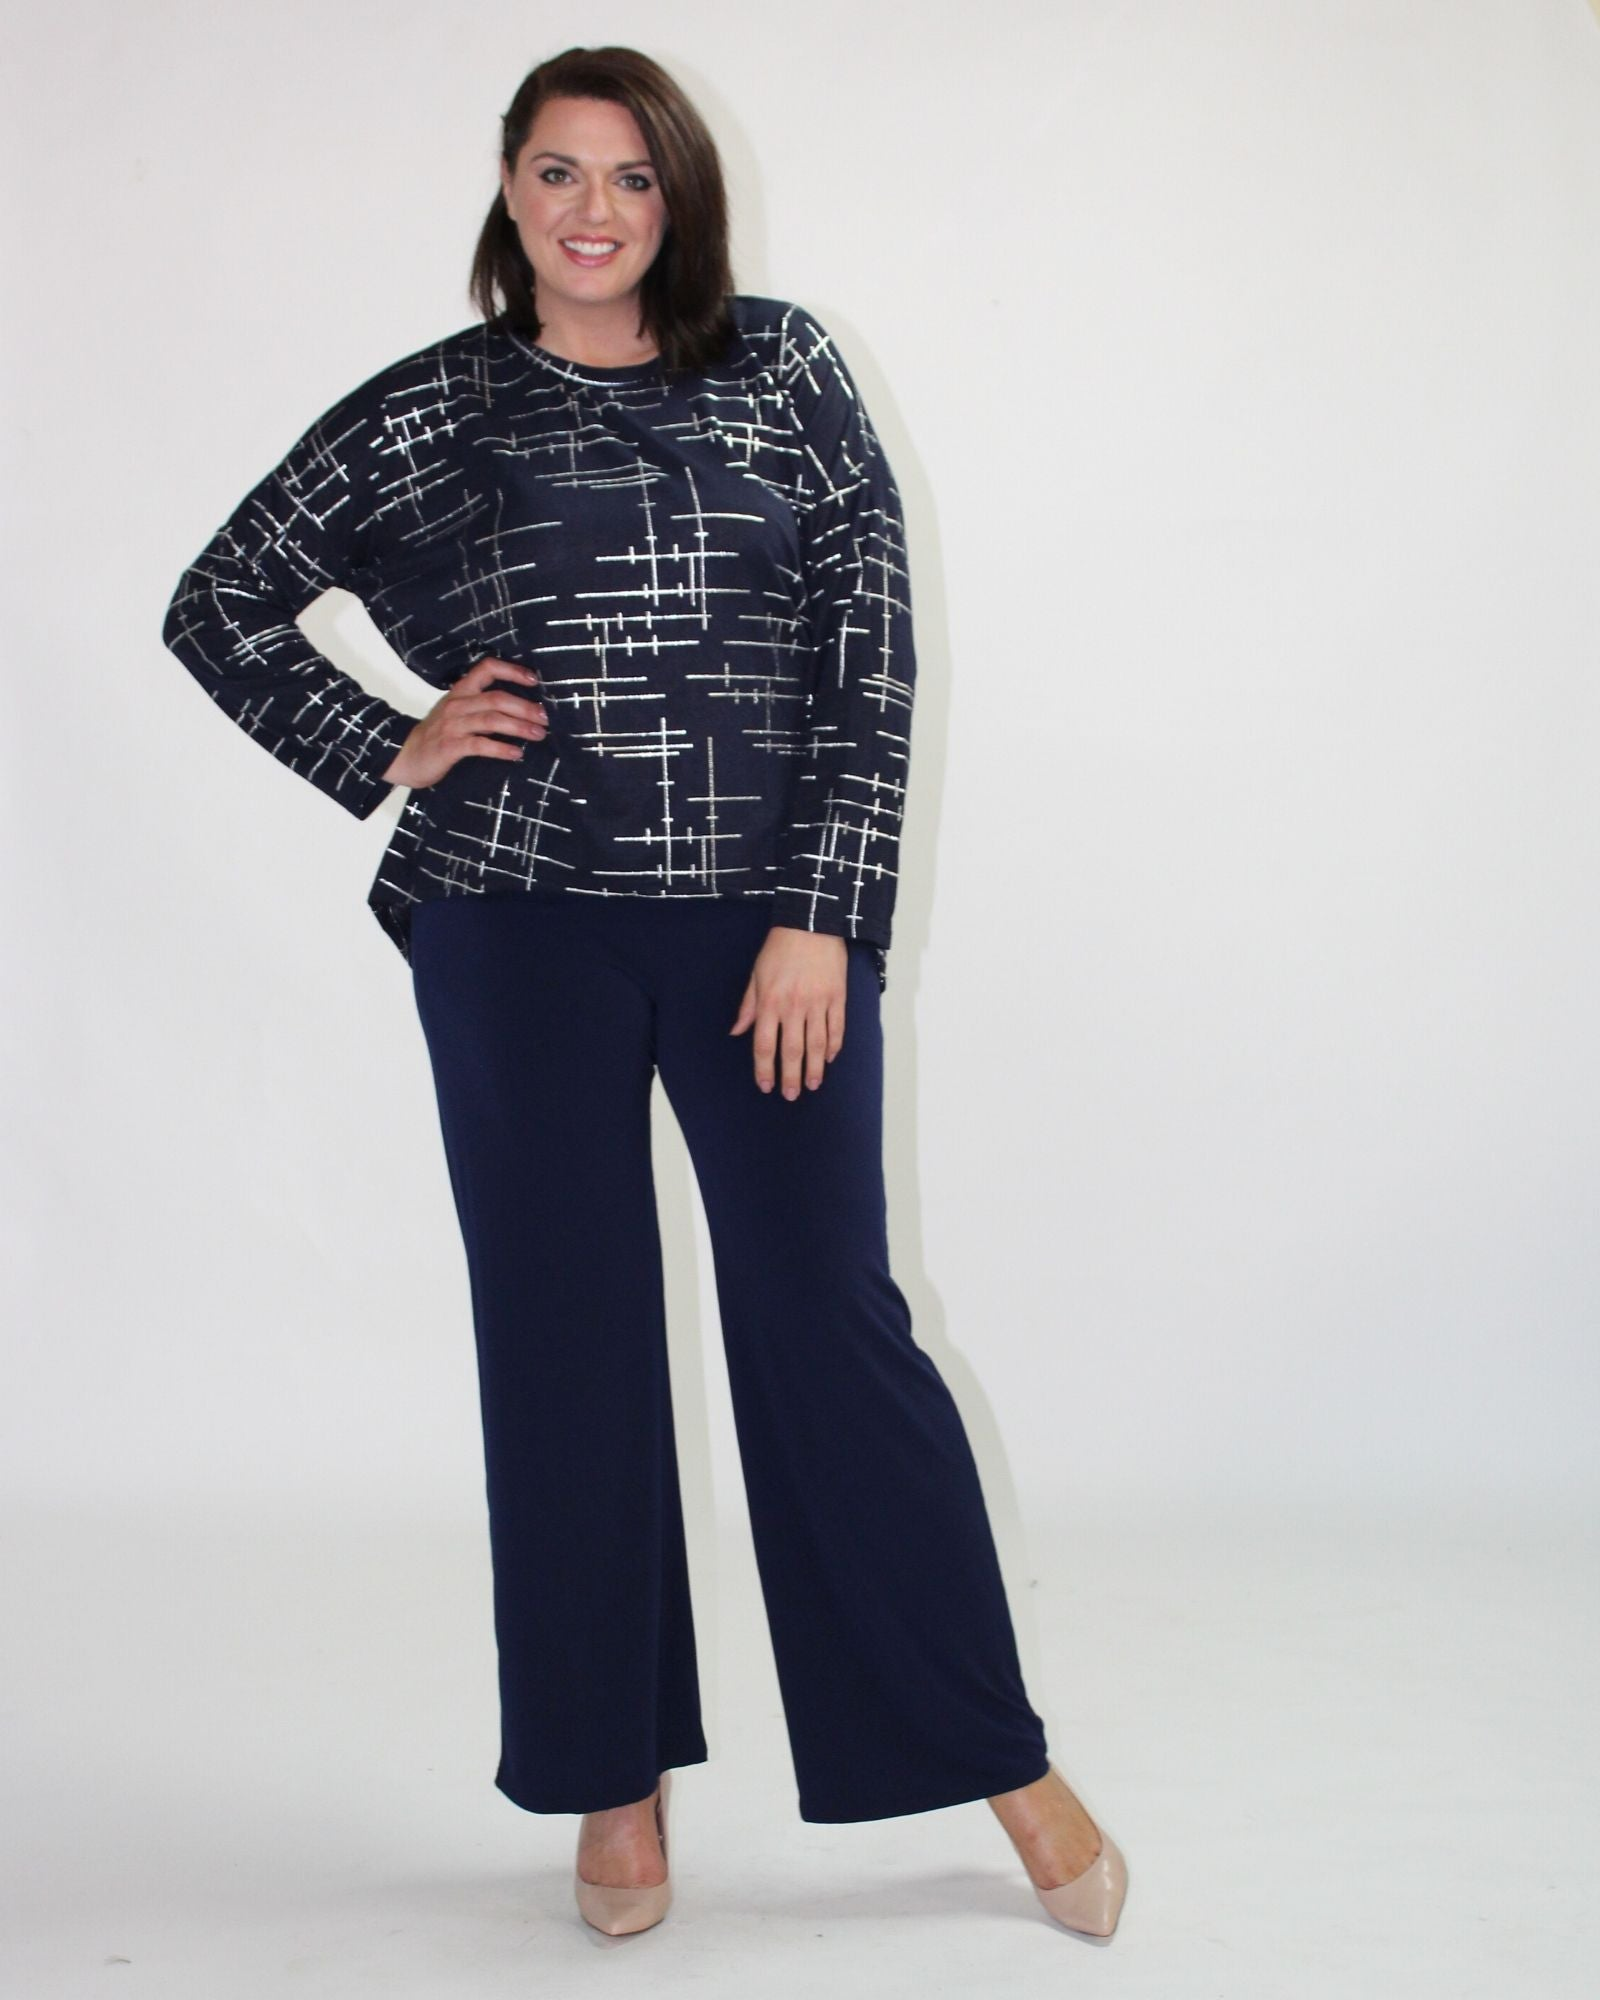 Navy Silver Foil Knit Top - Sizes 10-18